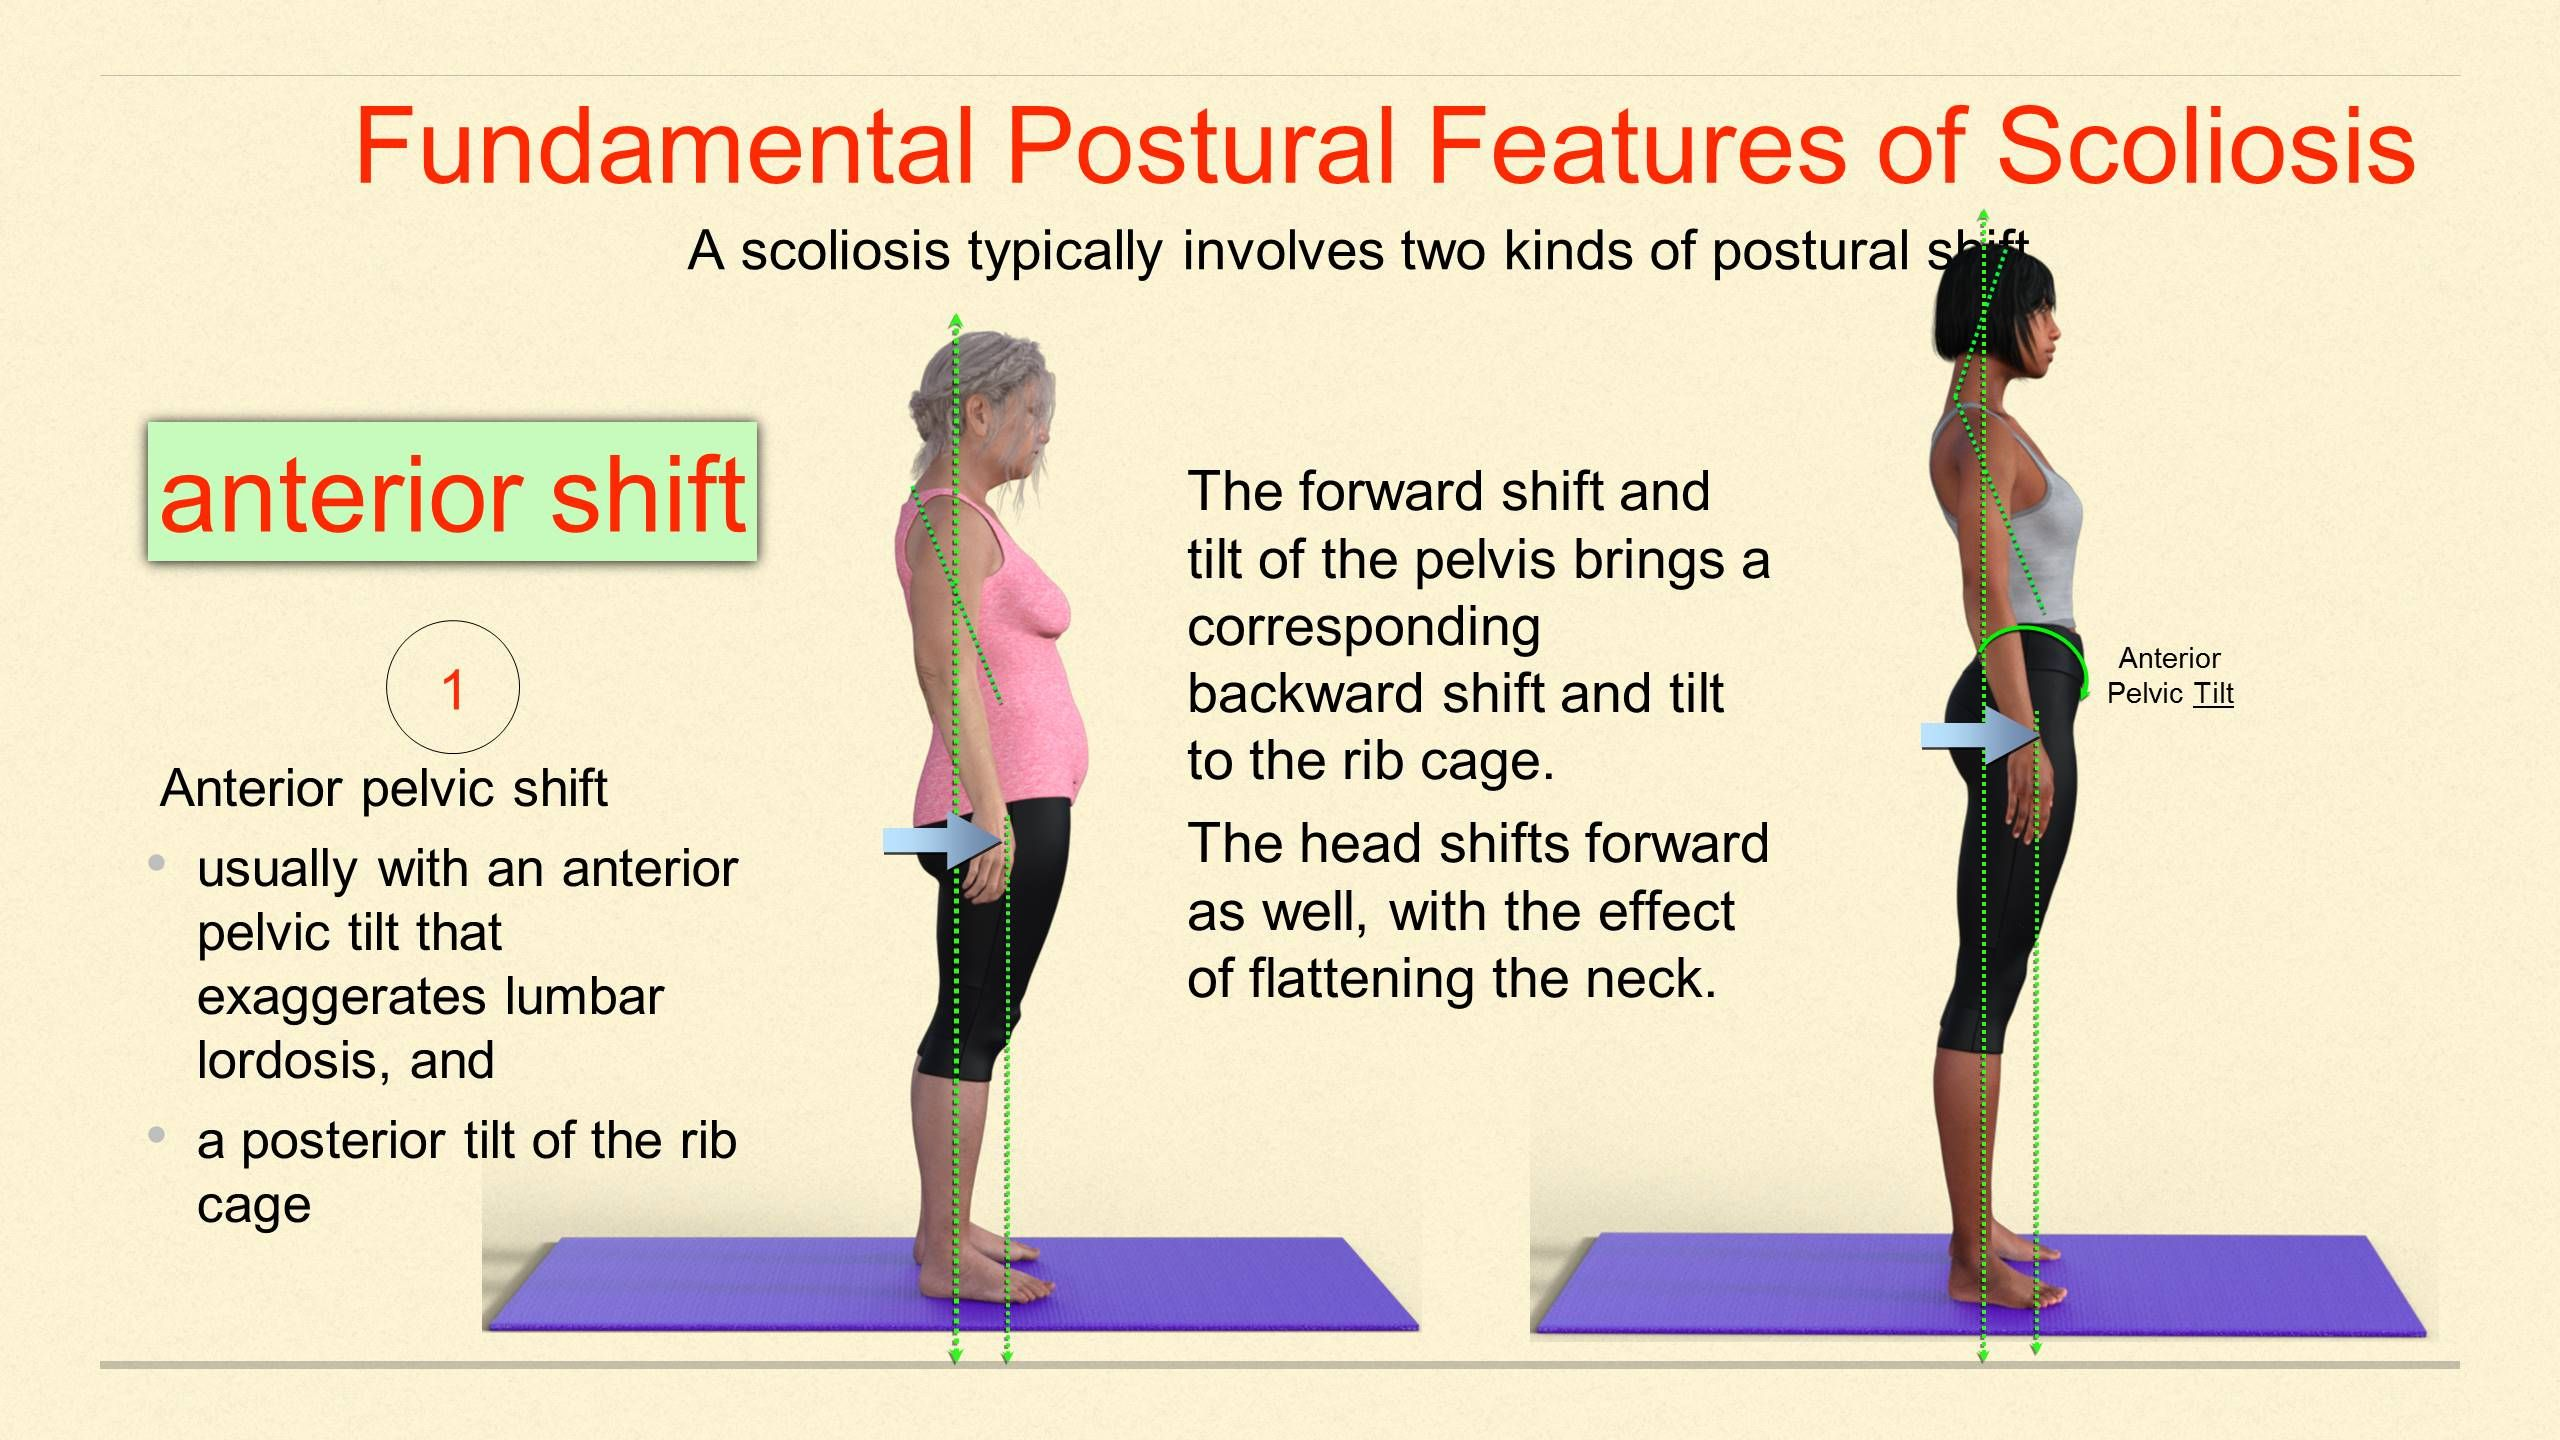 Sneak Peek Yoga For Scoliosis A Closer Look At Spinal Alignment With Doug Keller Yogauonline Yoga For Scoliosis Scoliosis Spinal